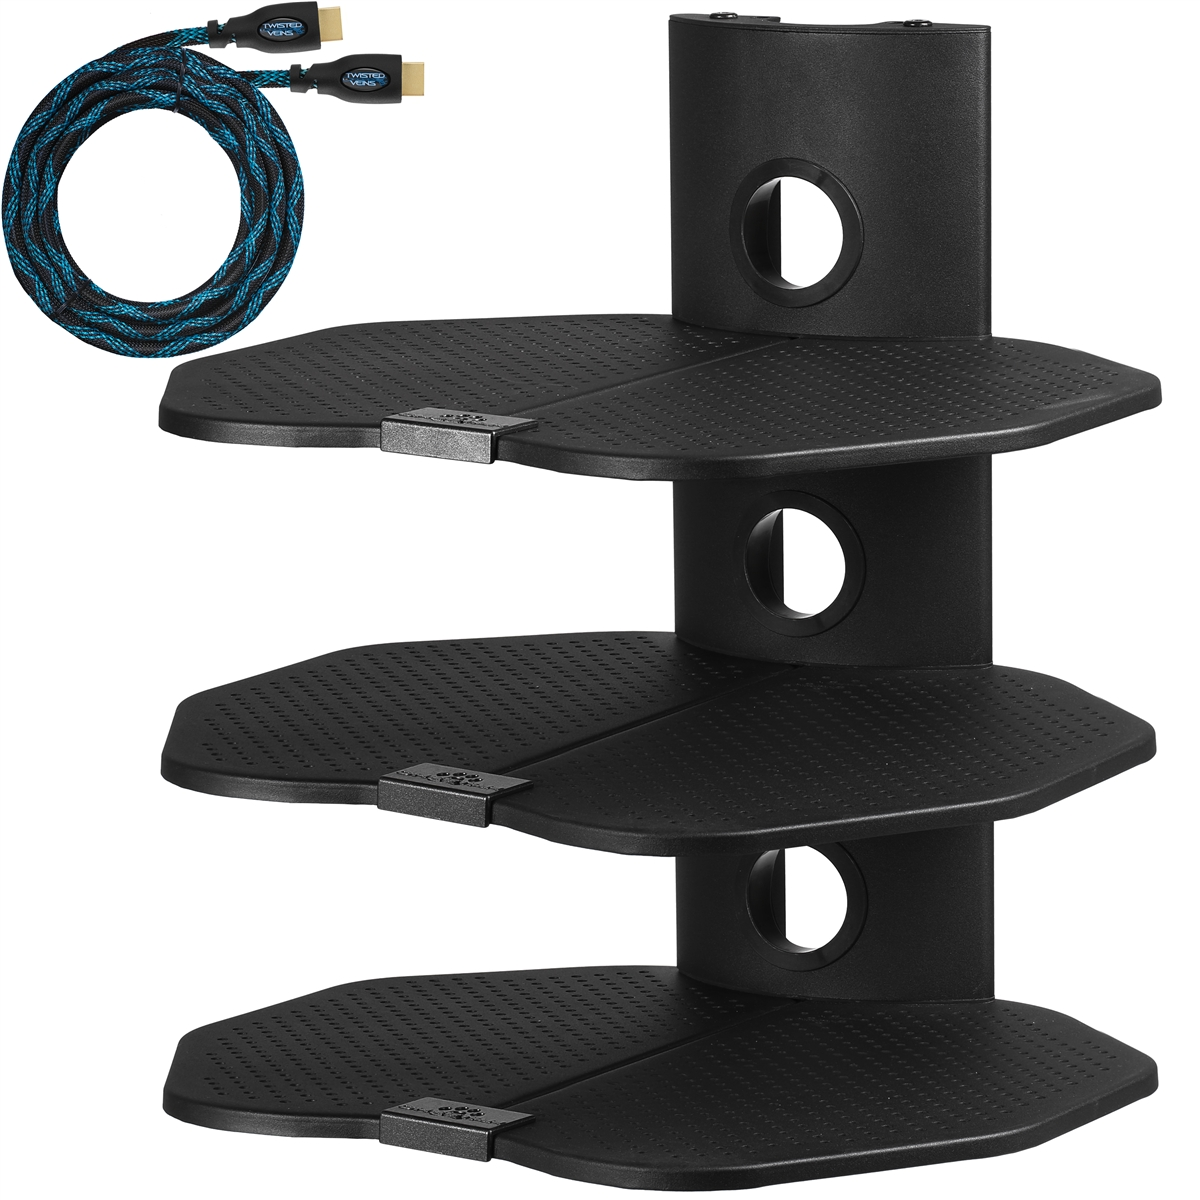 Cheetah Mounts As3b Three 3 Shelf Tv Component Wall Mount Shelving Bracket With 18x16 Shelves And 15 Twisted Veins Hdmi Cable Including